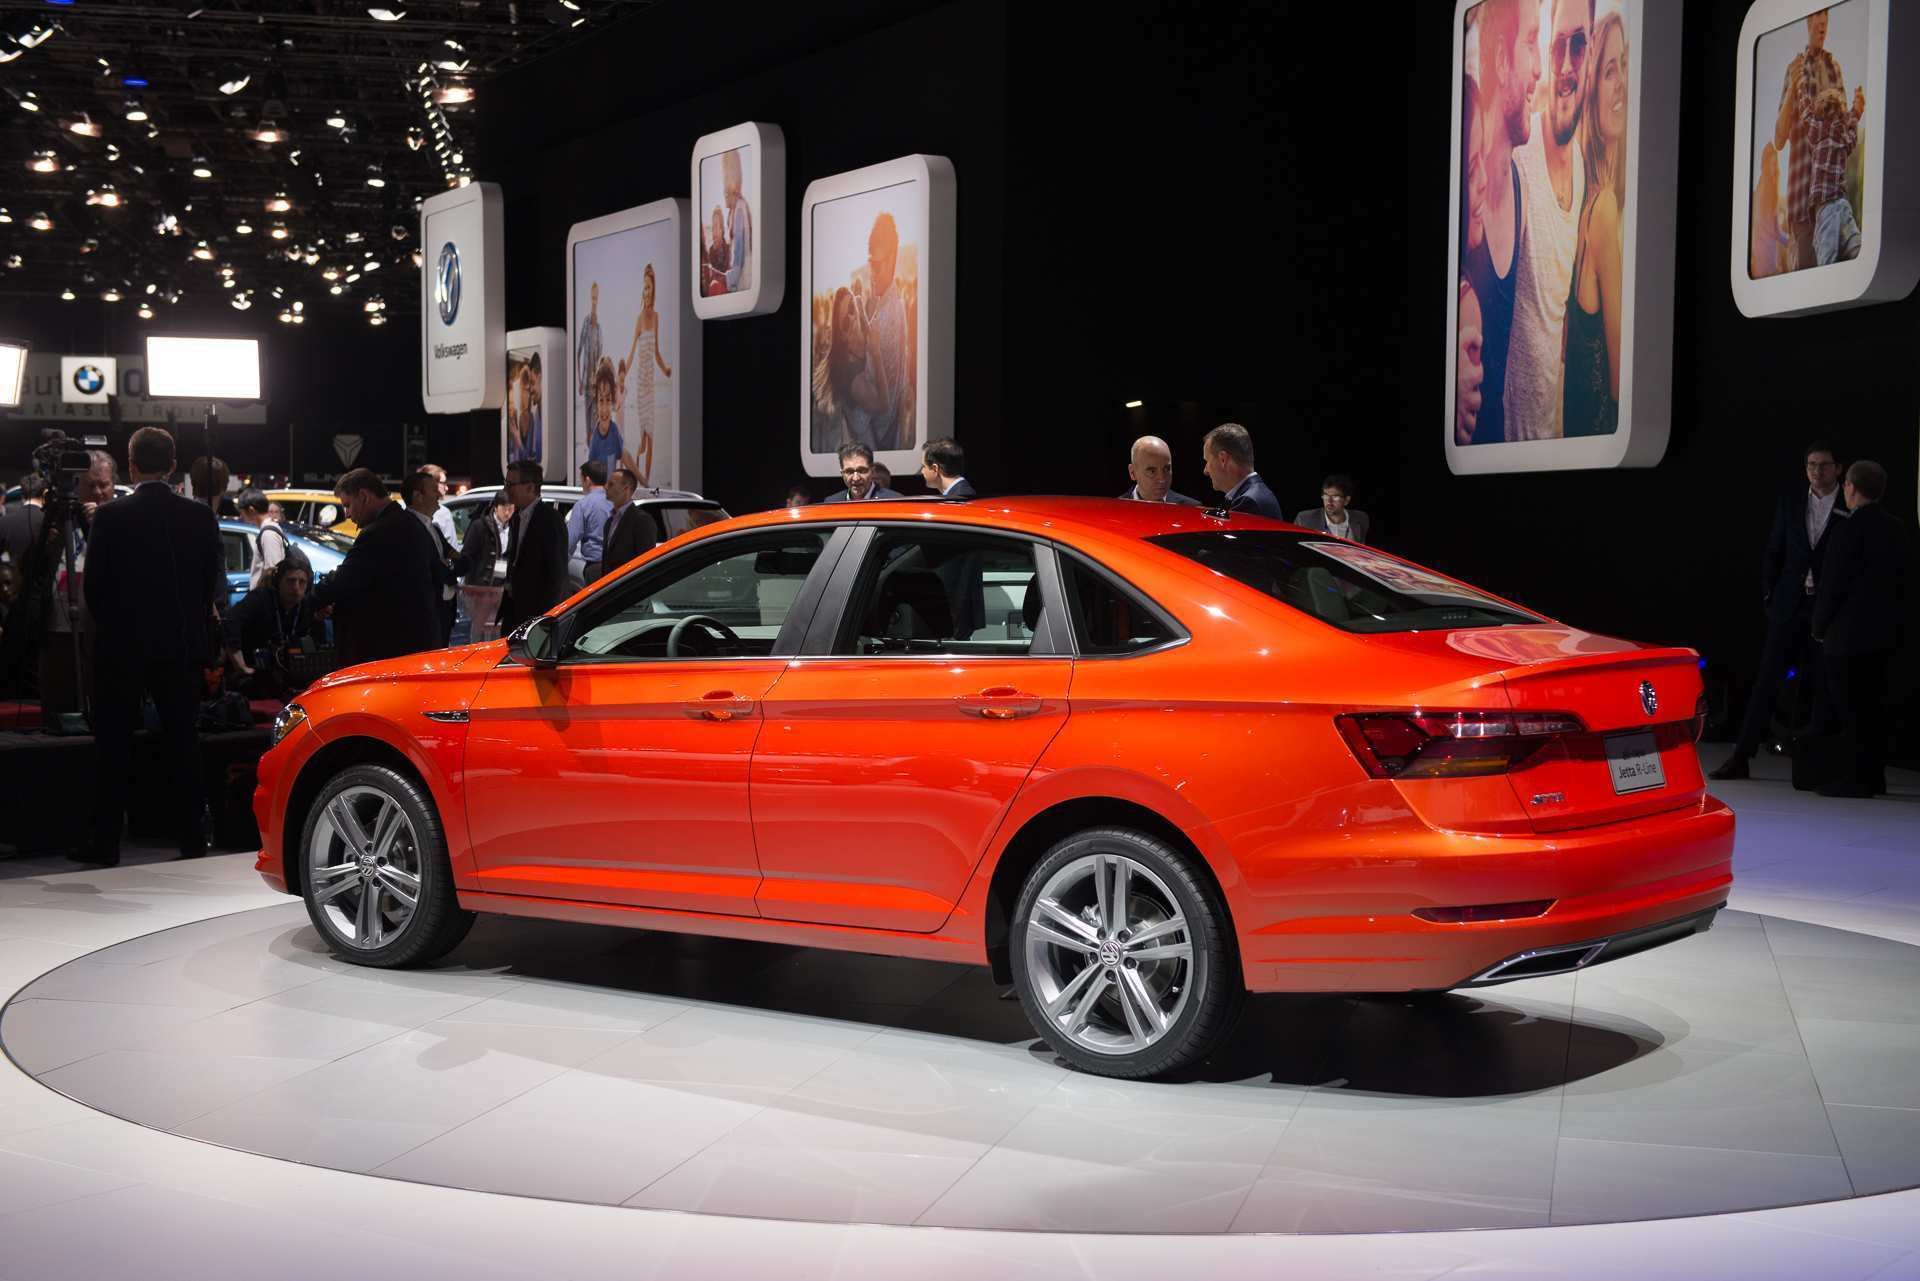 92 All New 2020 Vw Jetta New Review with 2020 Vw Jetta